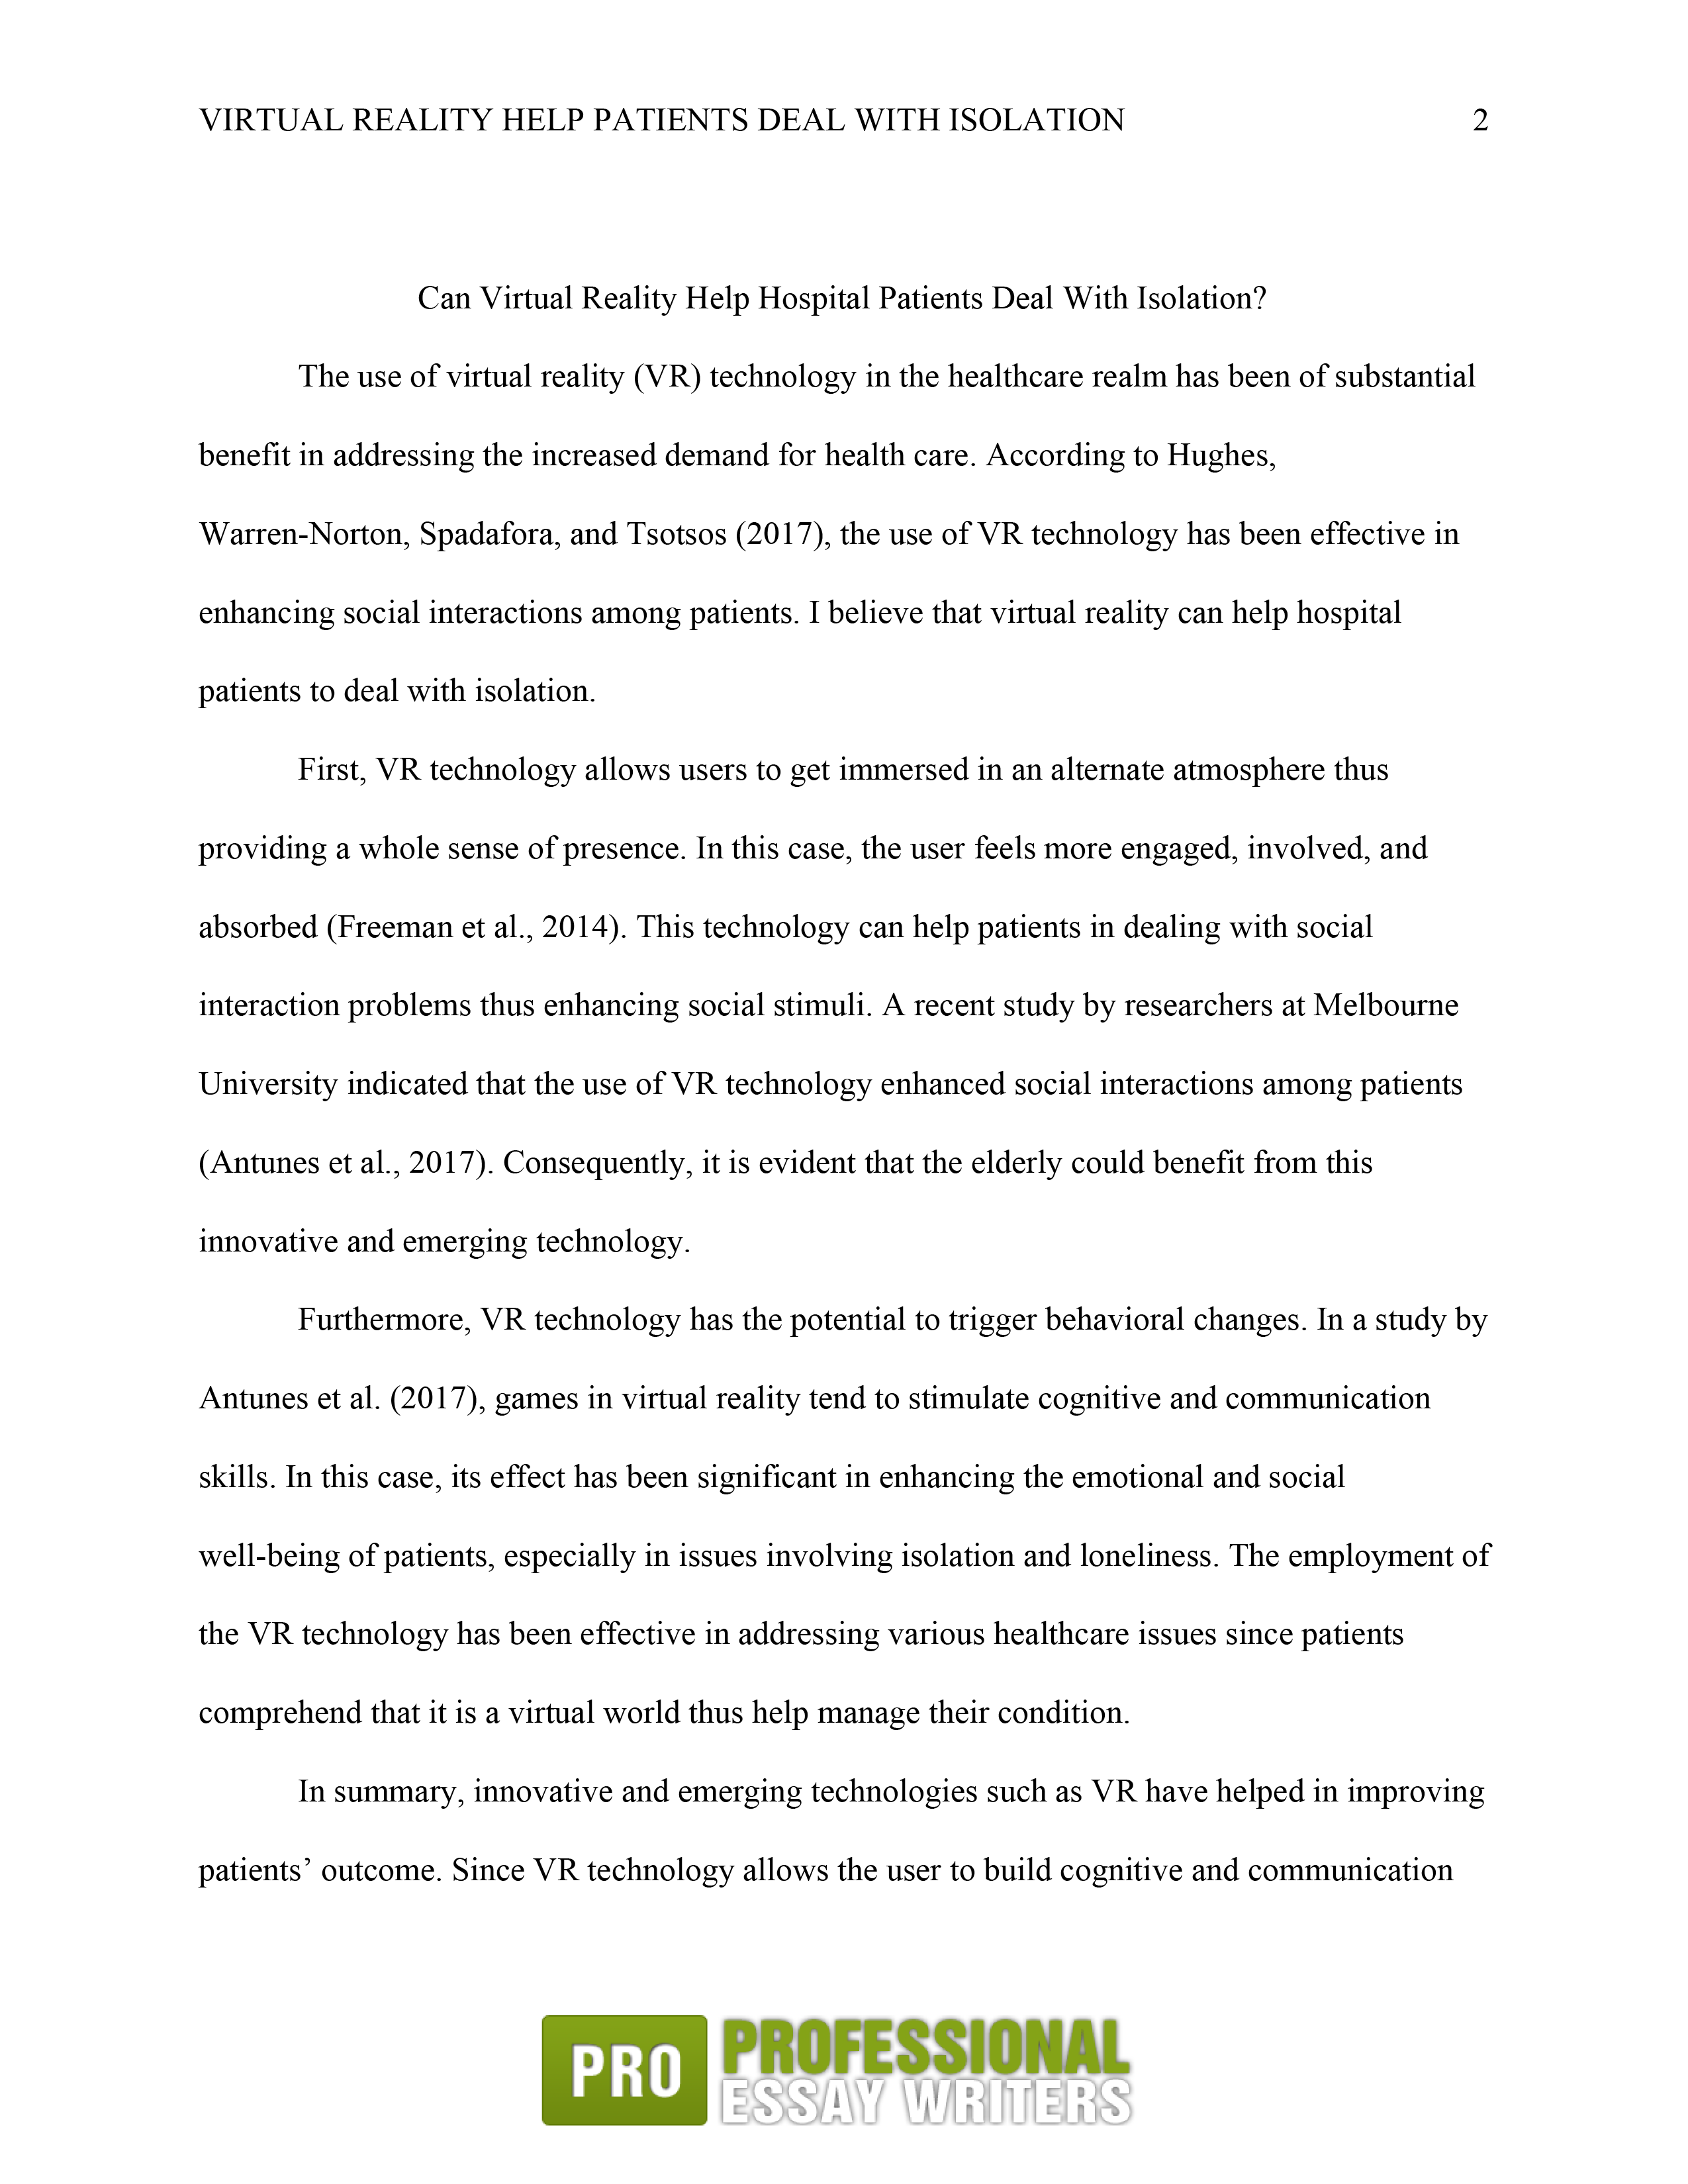 professional essay samples from top writers download